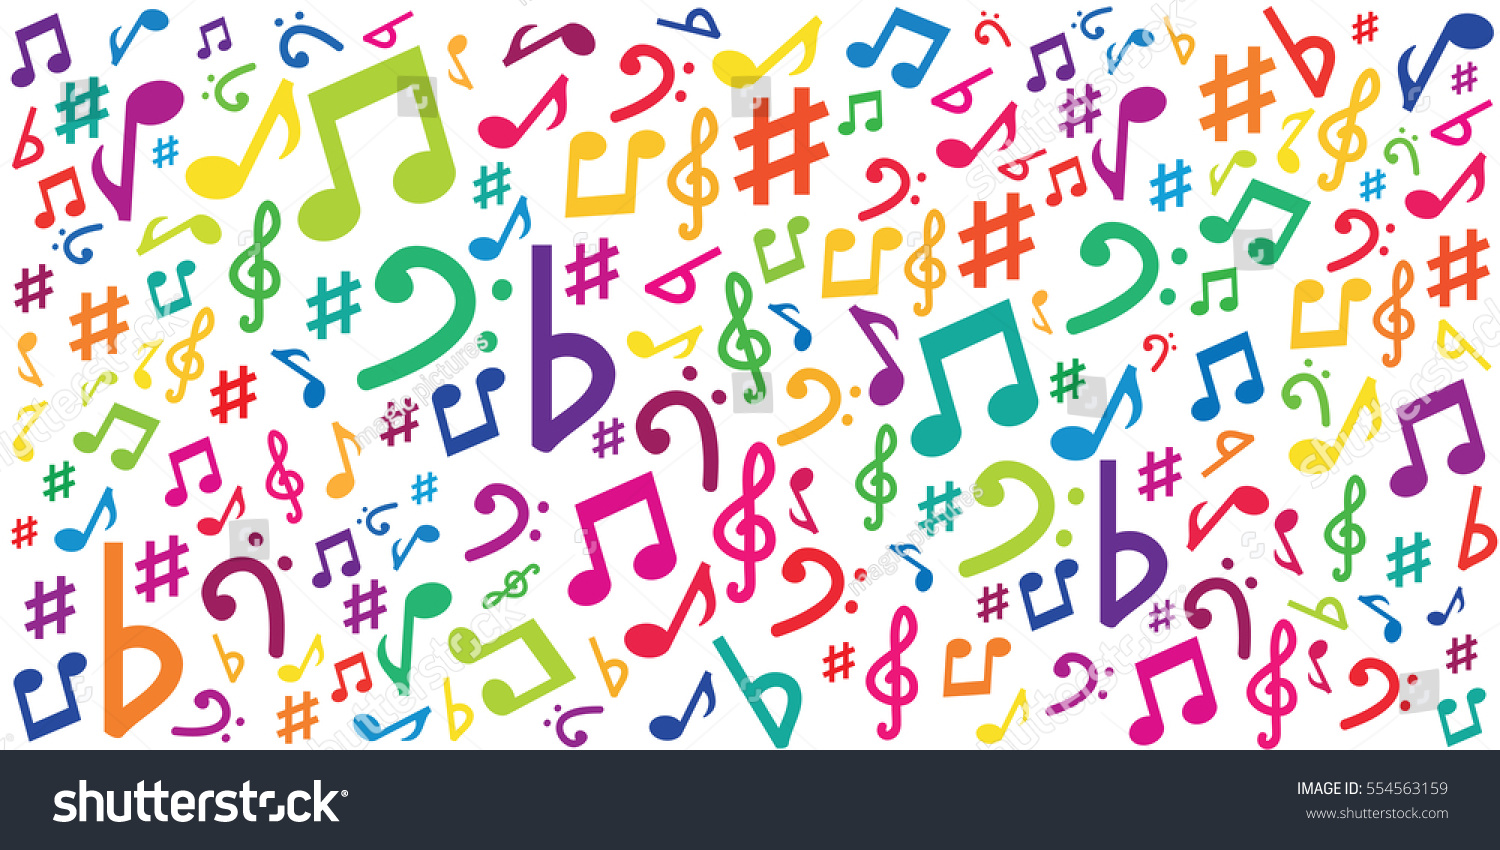 Vector illustration horizontal banner colorful musical stock vector illustration of horizontal banner with colorful musical notes and symbols for audio media concepts and biocorpaavc Image collections